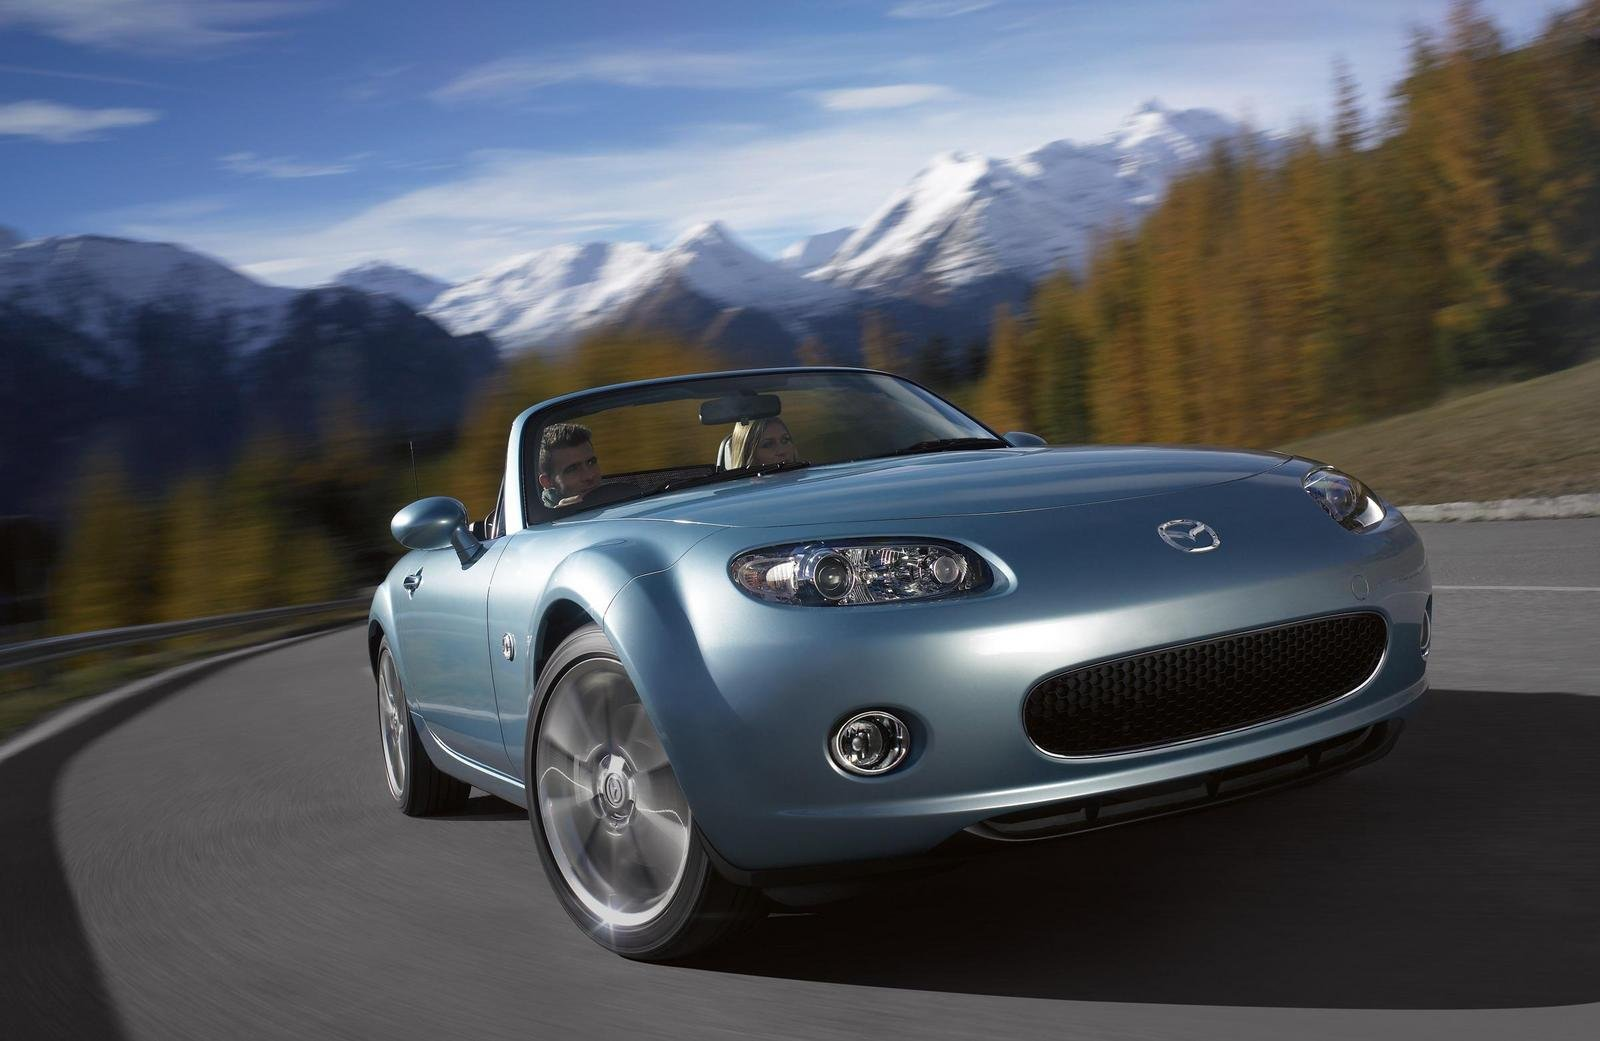 2008 mazda mx 5 niseko edition review top speed. Black Bedroom Furniture Sets. Home Design Ideas